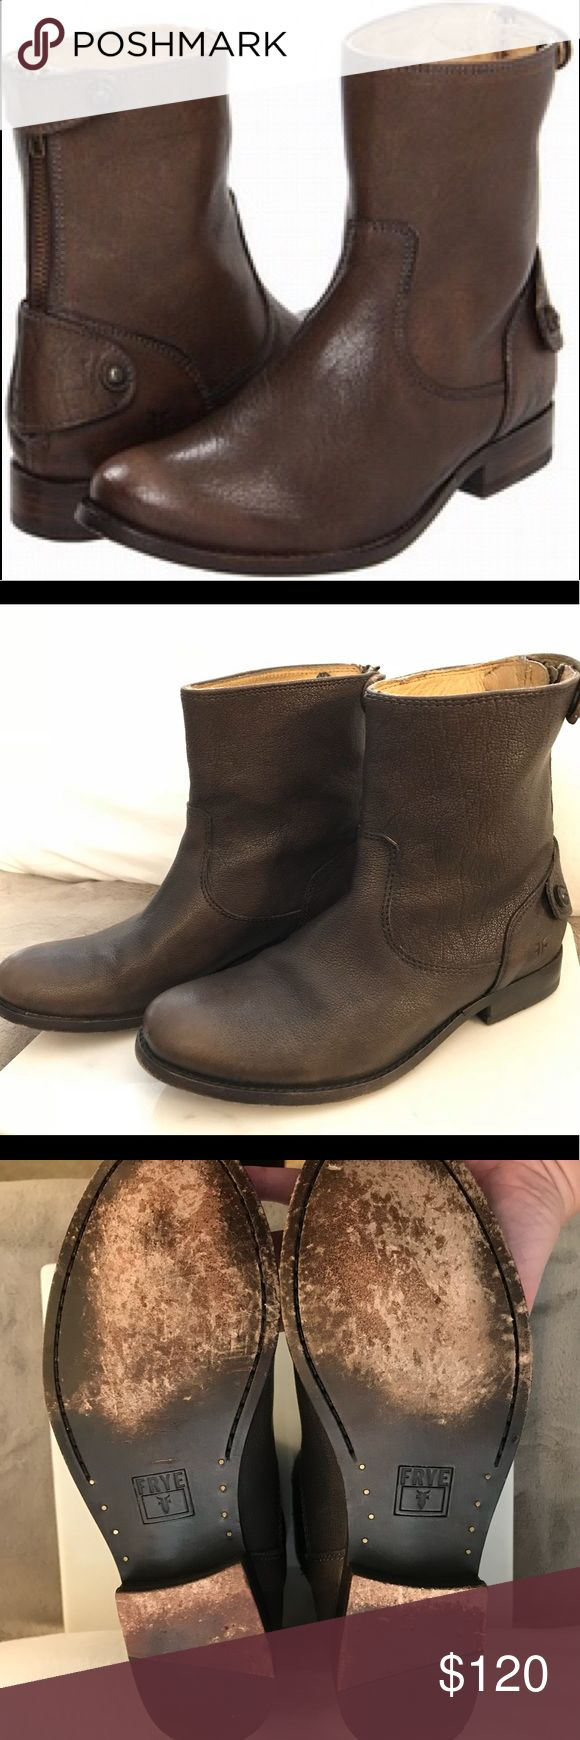 Frye Melissa Short Button Boot 5.5 Barely worn Frye short button boots with zipper on the back. Only signs of wear are on the bottom. Beautiful greyish-brown color that goes with everything. Size is a 5.5. Frye Shoes Ankle Boots & Booties